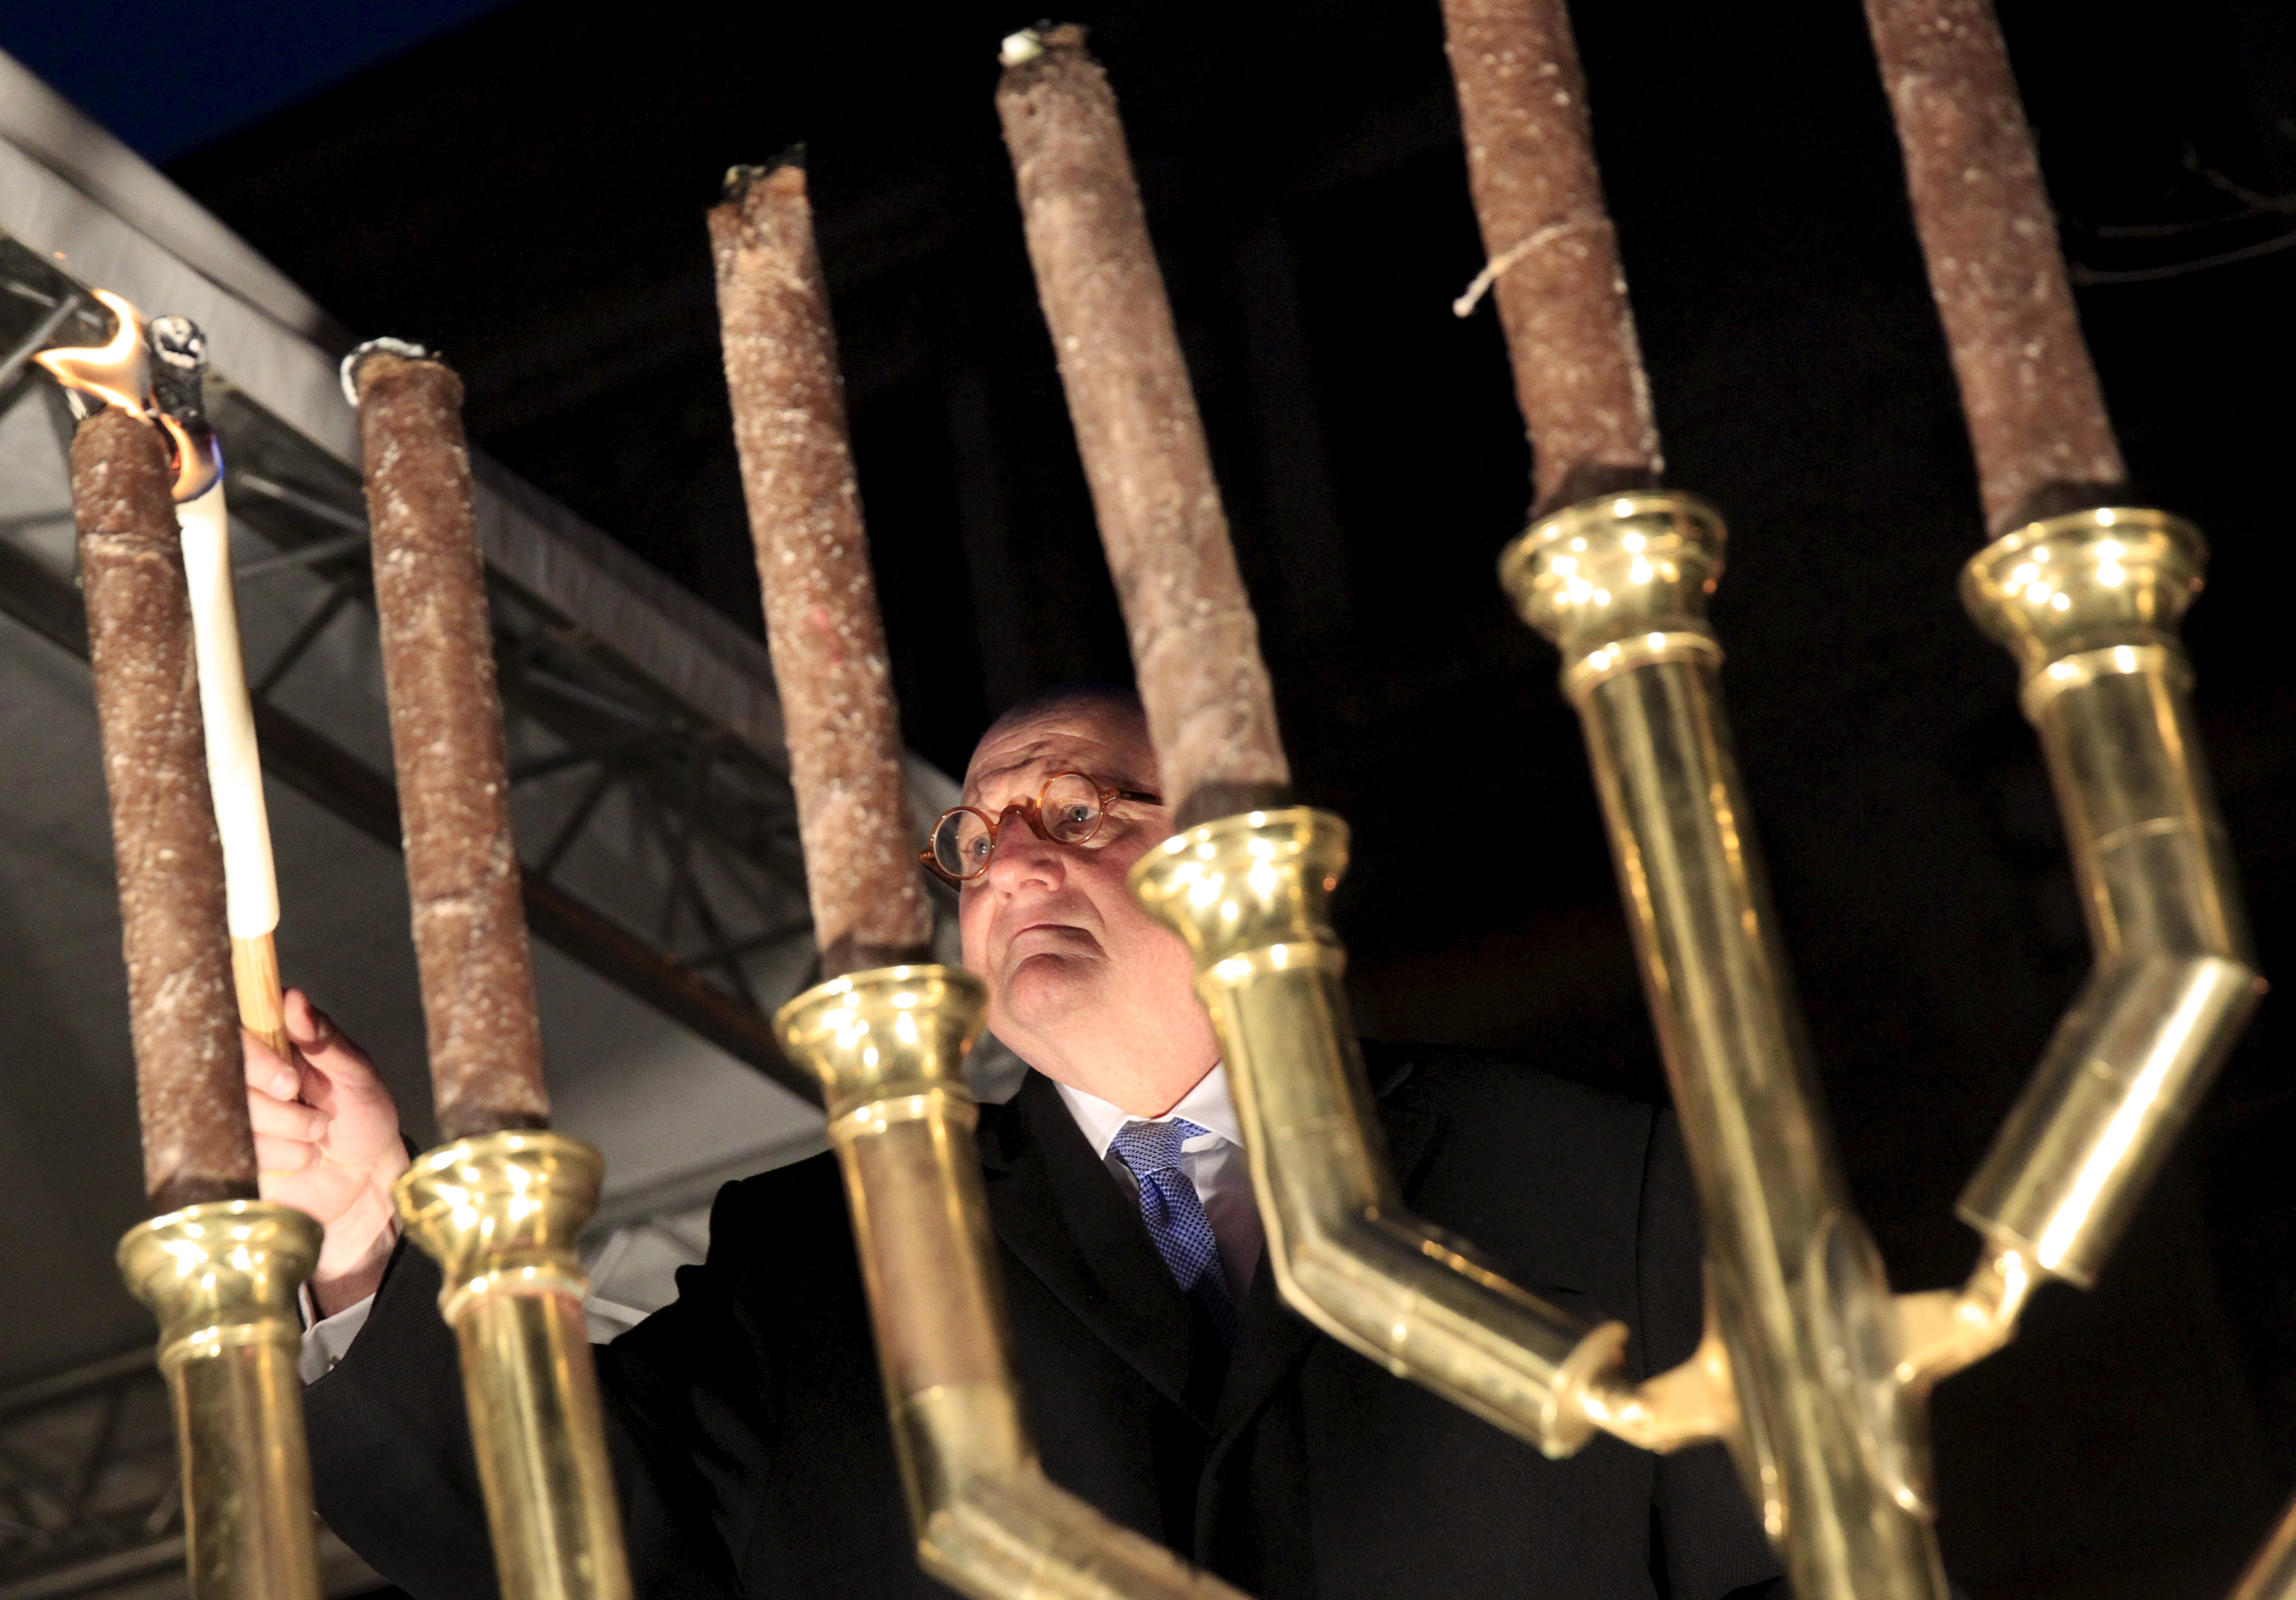 Ira Forman, U.S. special envoy of the Office to Monitor and Combat Anti-Semitism, lights a menorah during a protest organized by a Jewish group against a planned statue of Balint Homan in Szekesfehervar, Hungary, on Dec. 13, 2015